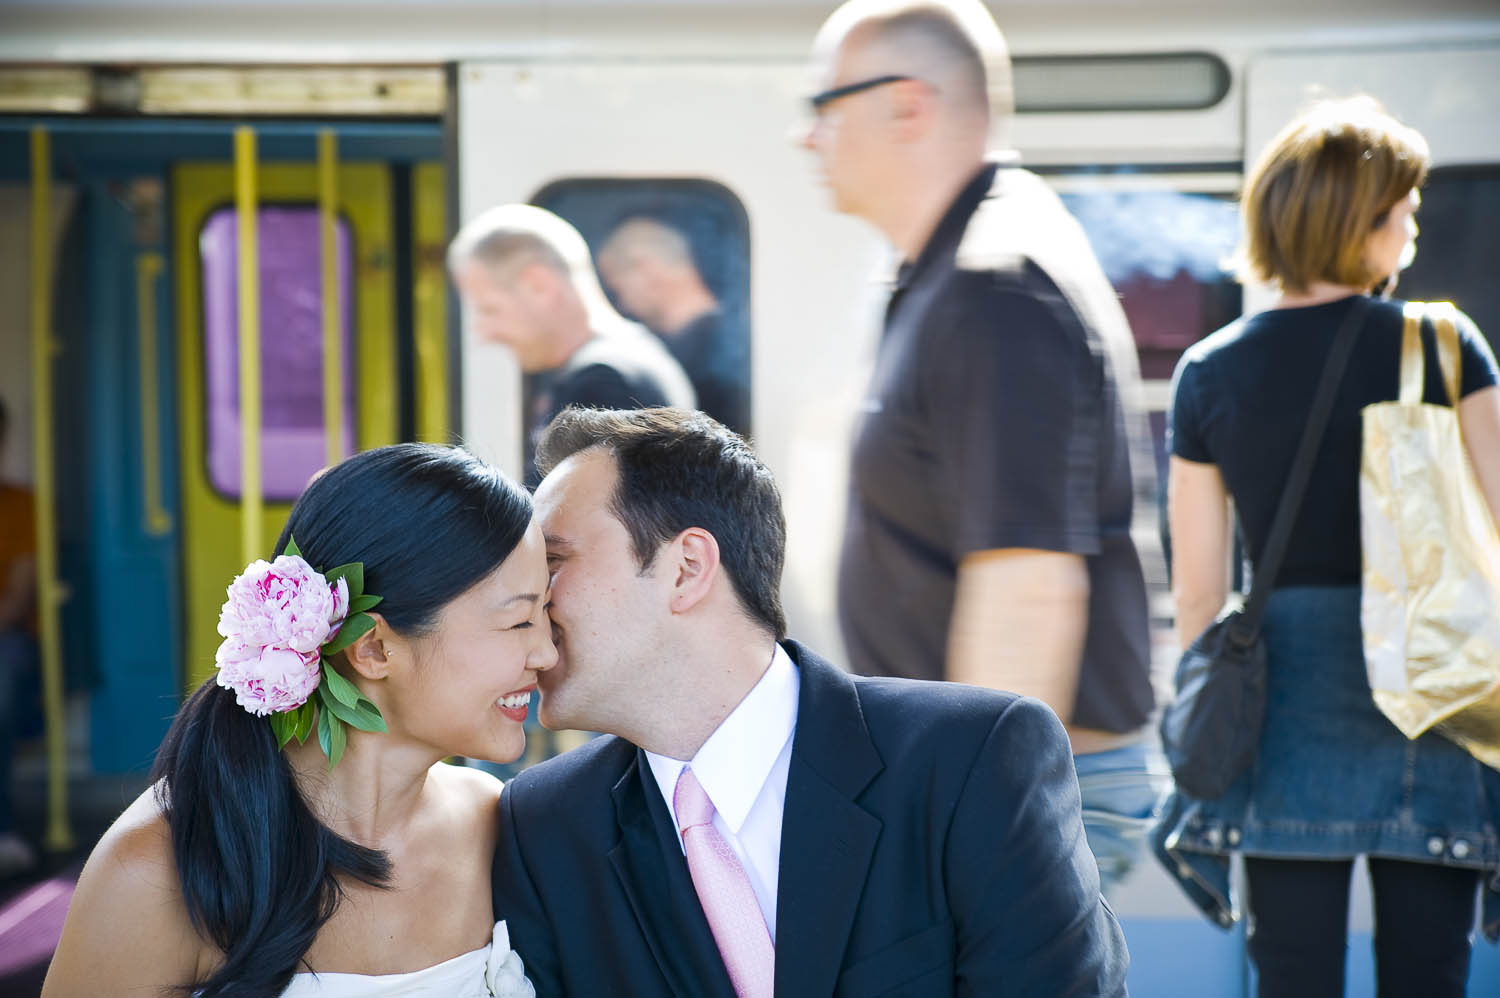 Wedding couple kissing at a train station in Rome Italy during a photographer session